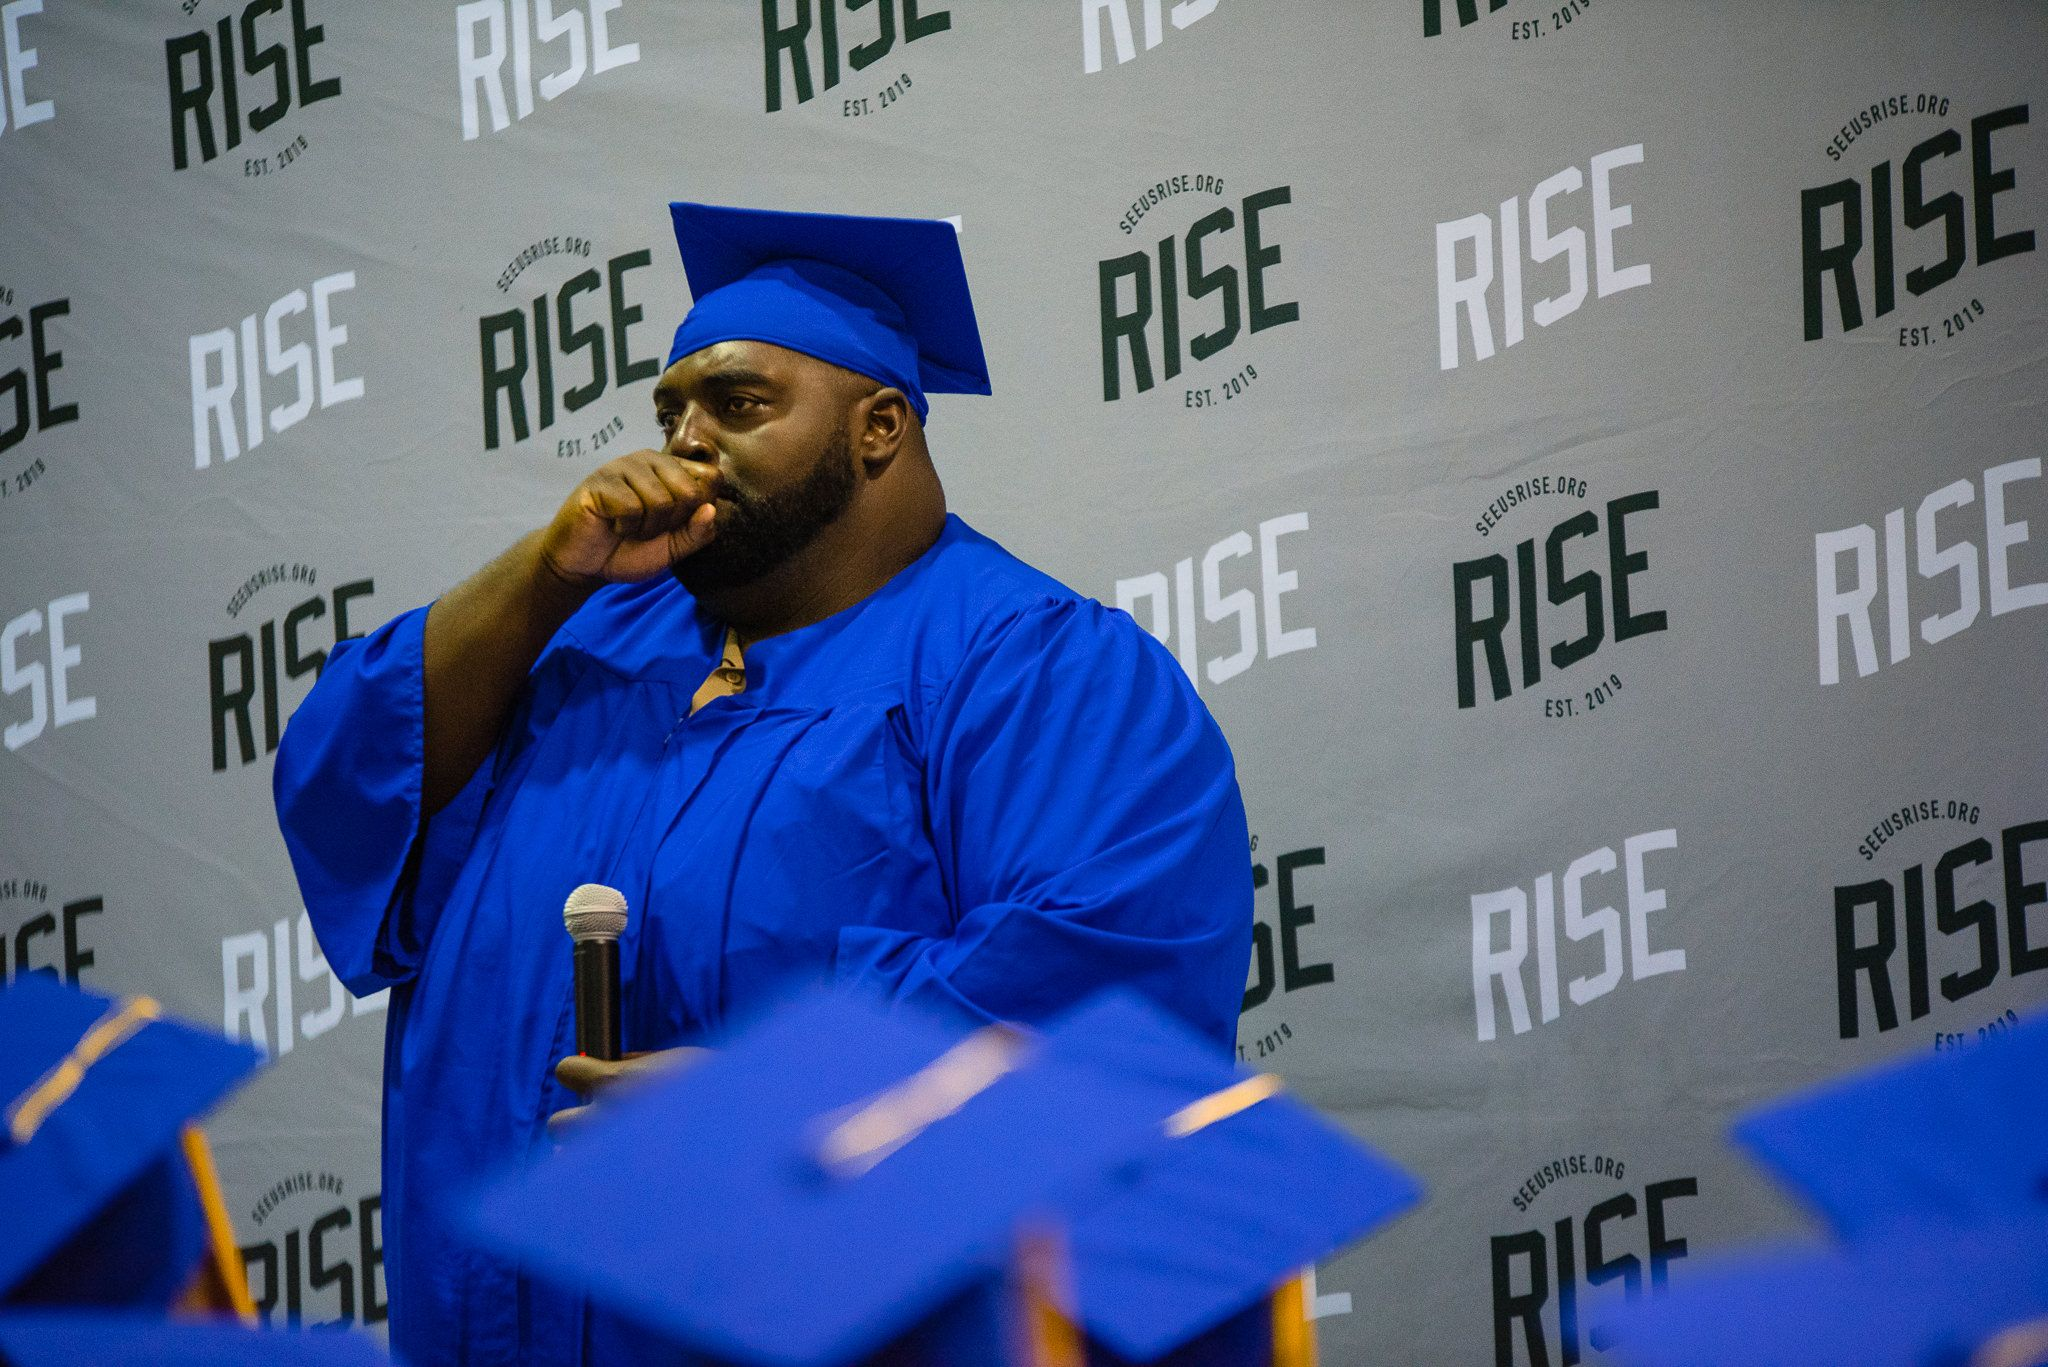 RISE Business Pitch Competition + Graduation